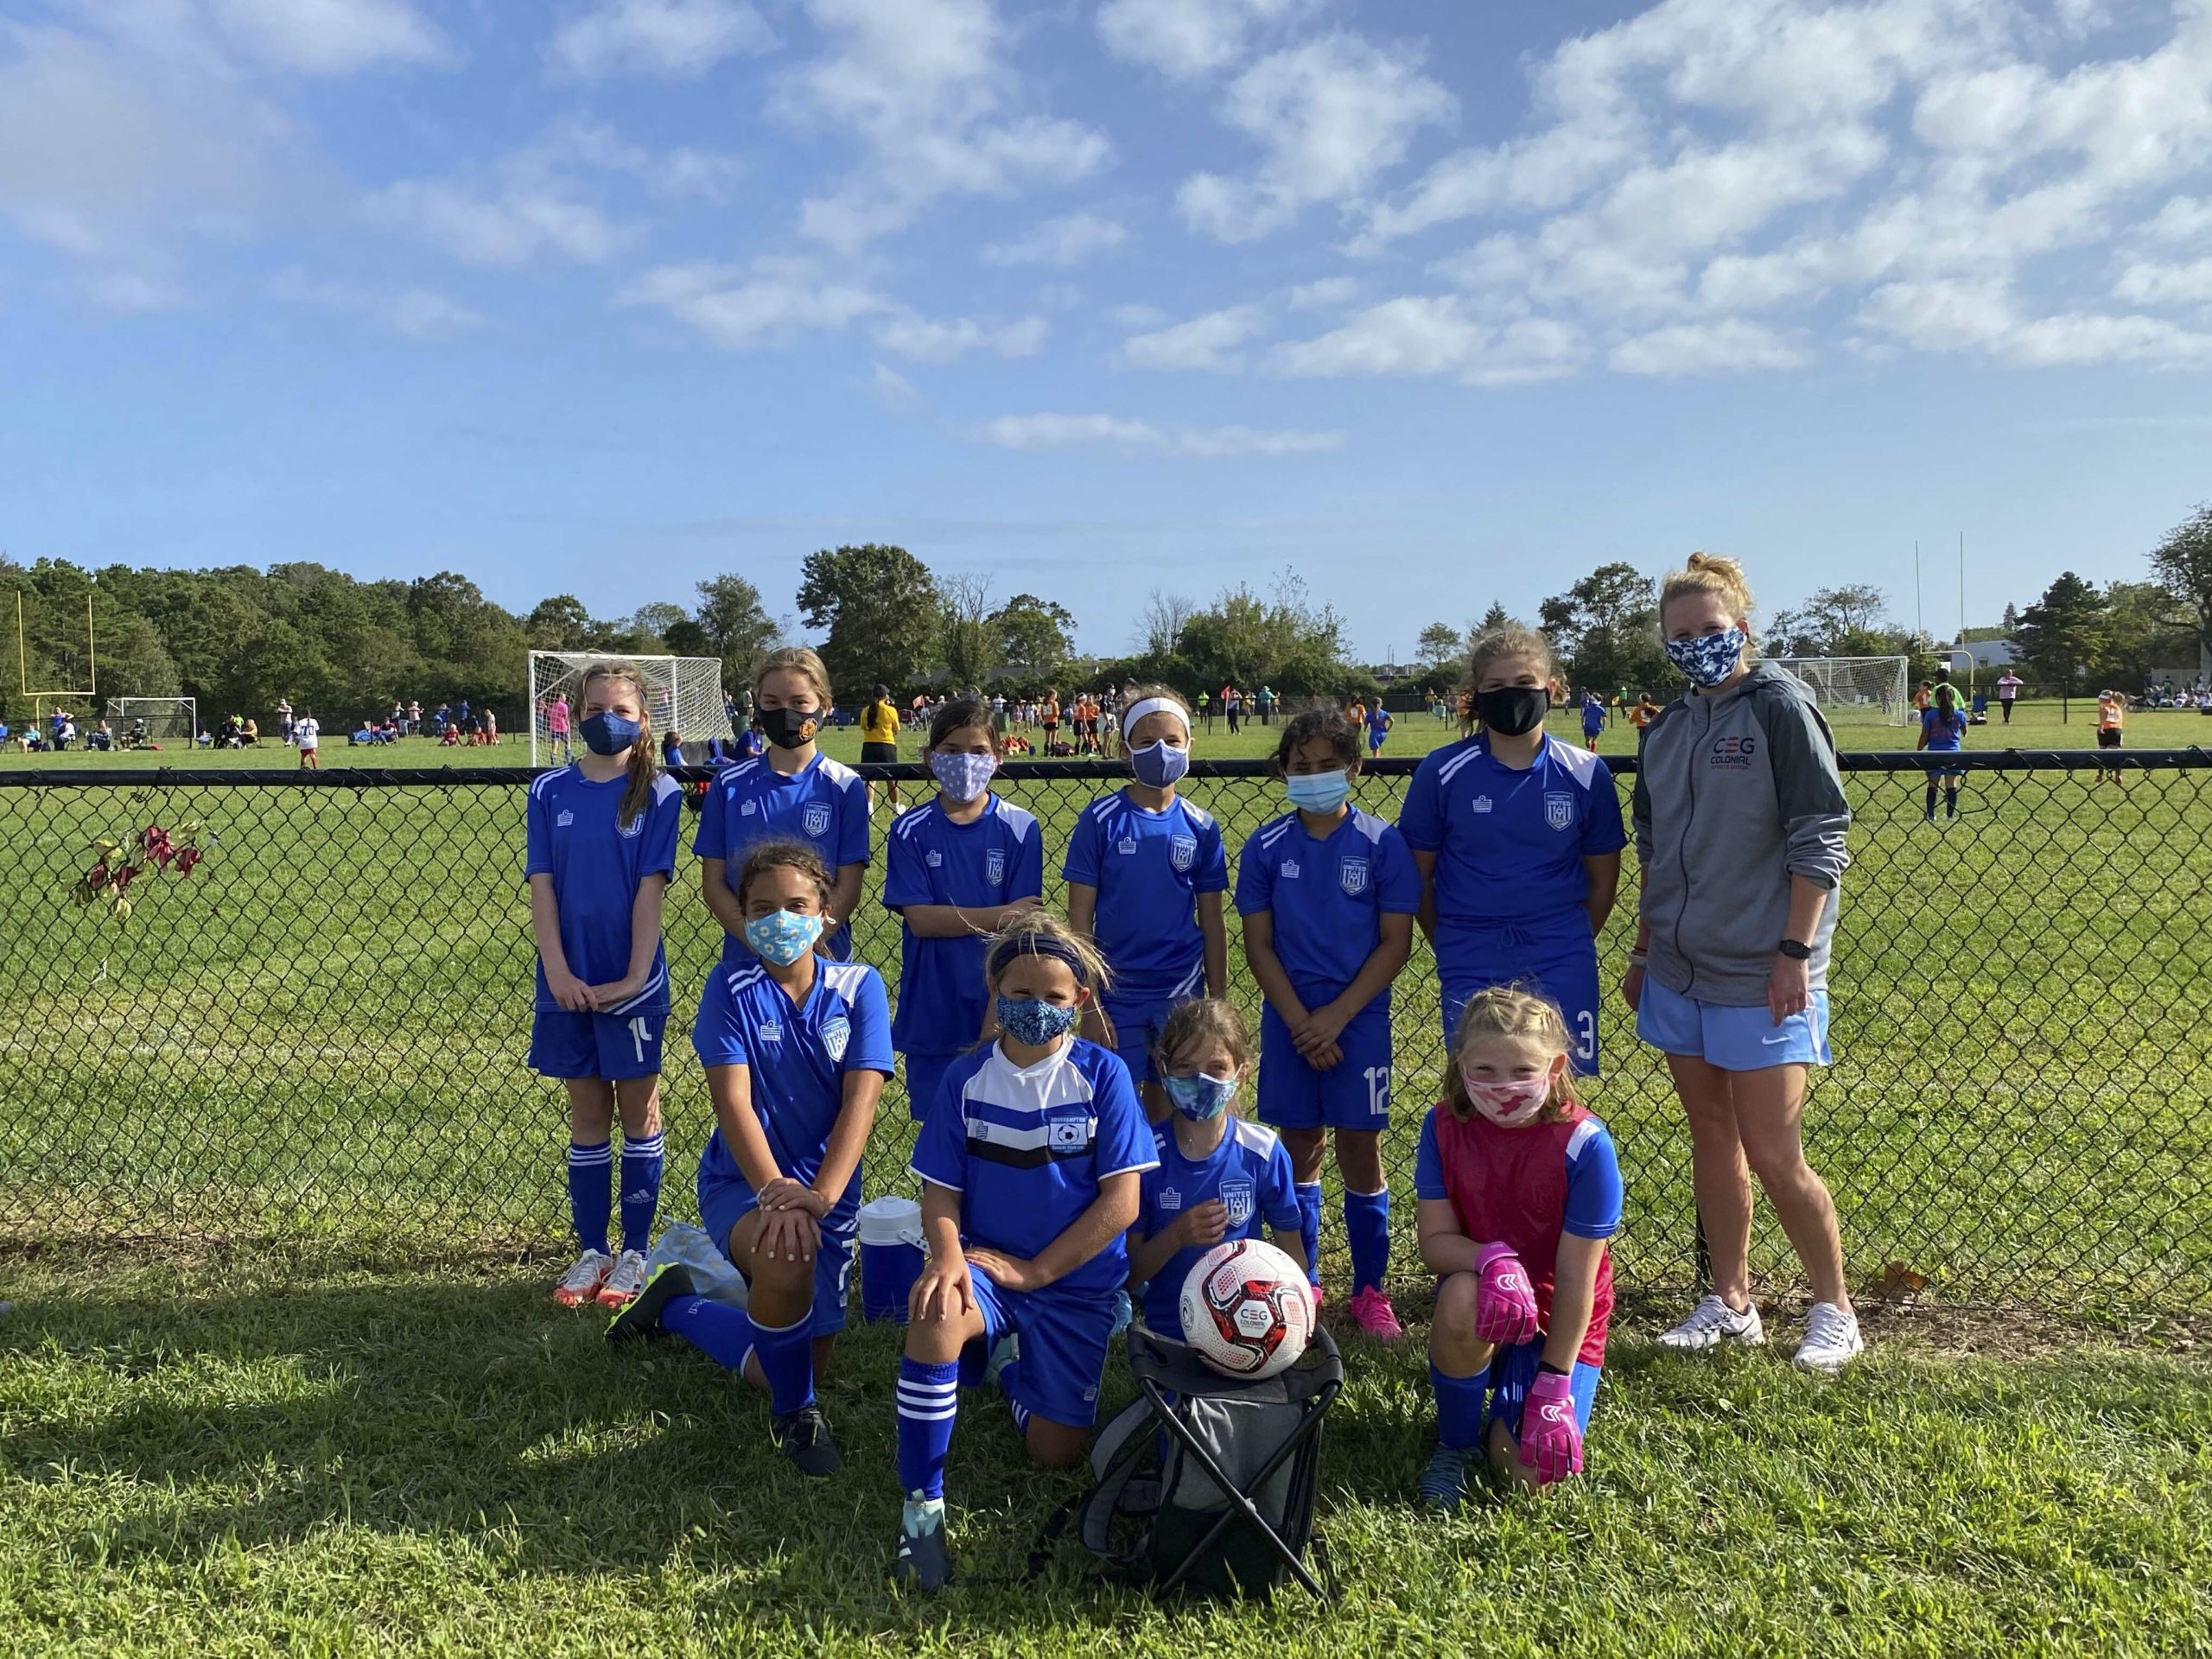 Travel team players who missed out on the spring season because of the pandemic have been thrilled to be playing with teammates again this fall. The Southampton Soccer Club has provided an outlet for many children on the East End who have seen regular high school sports seasons cancelled.